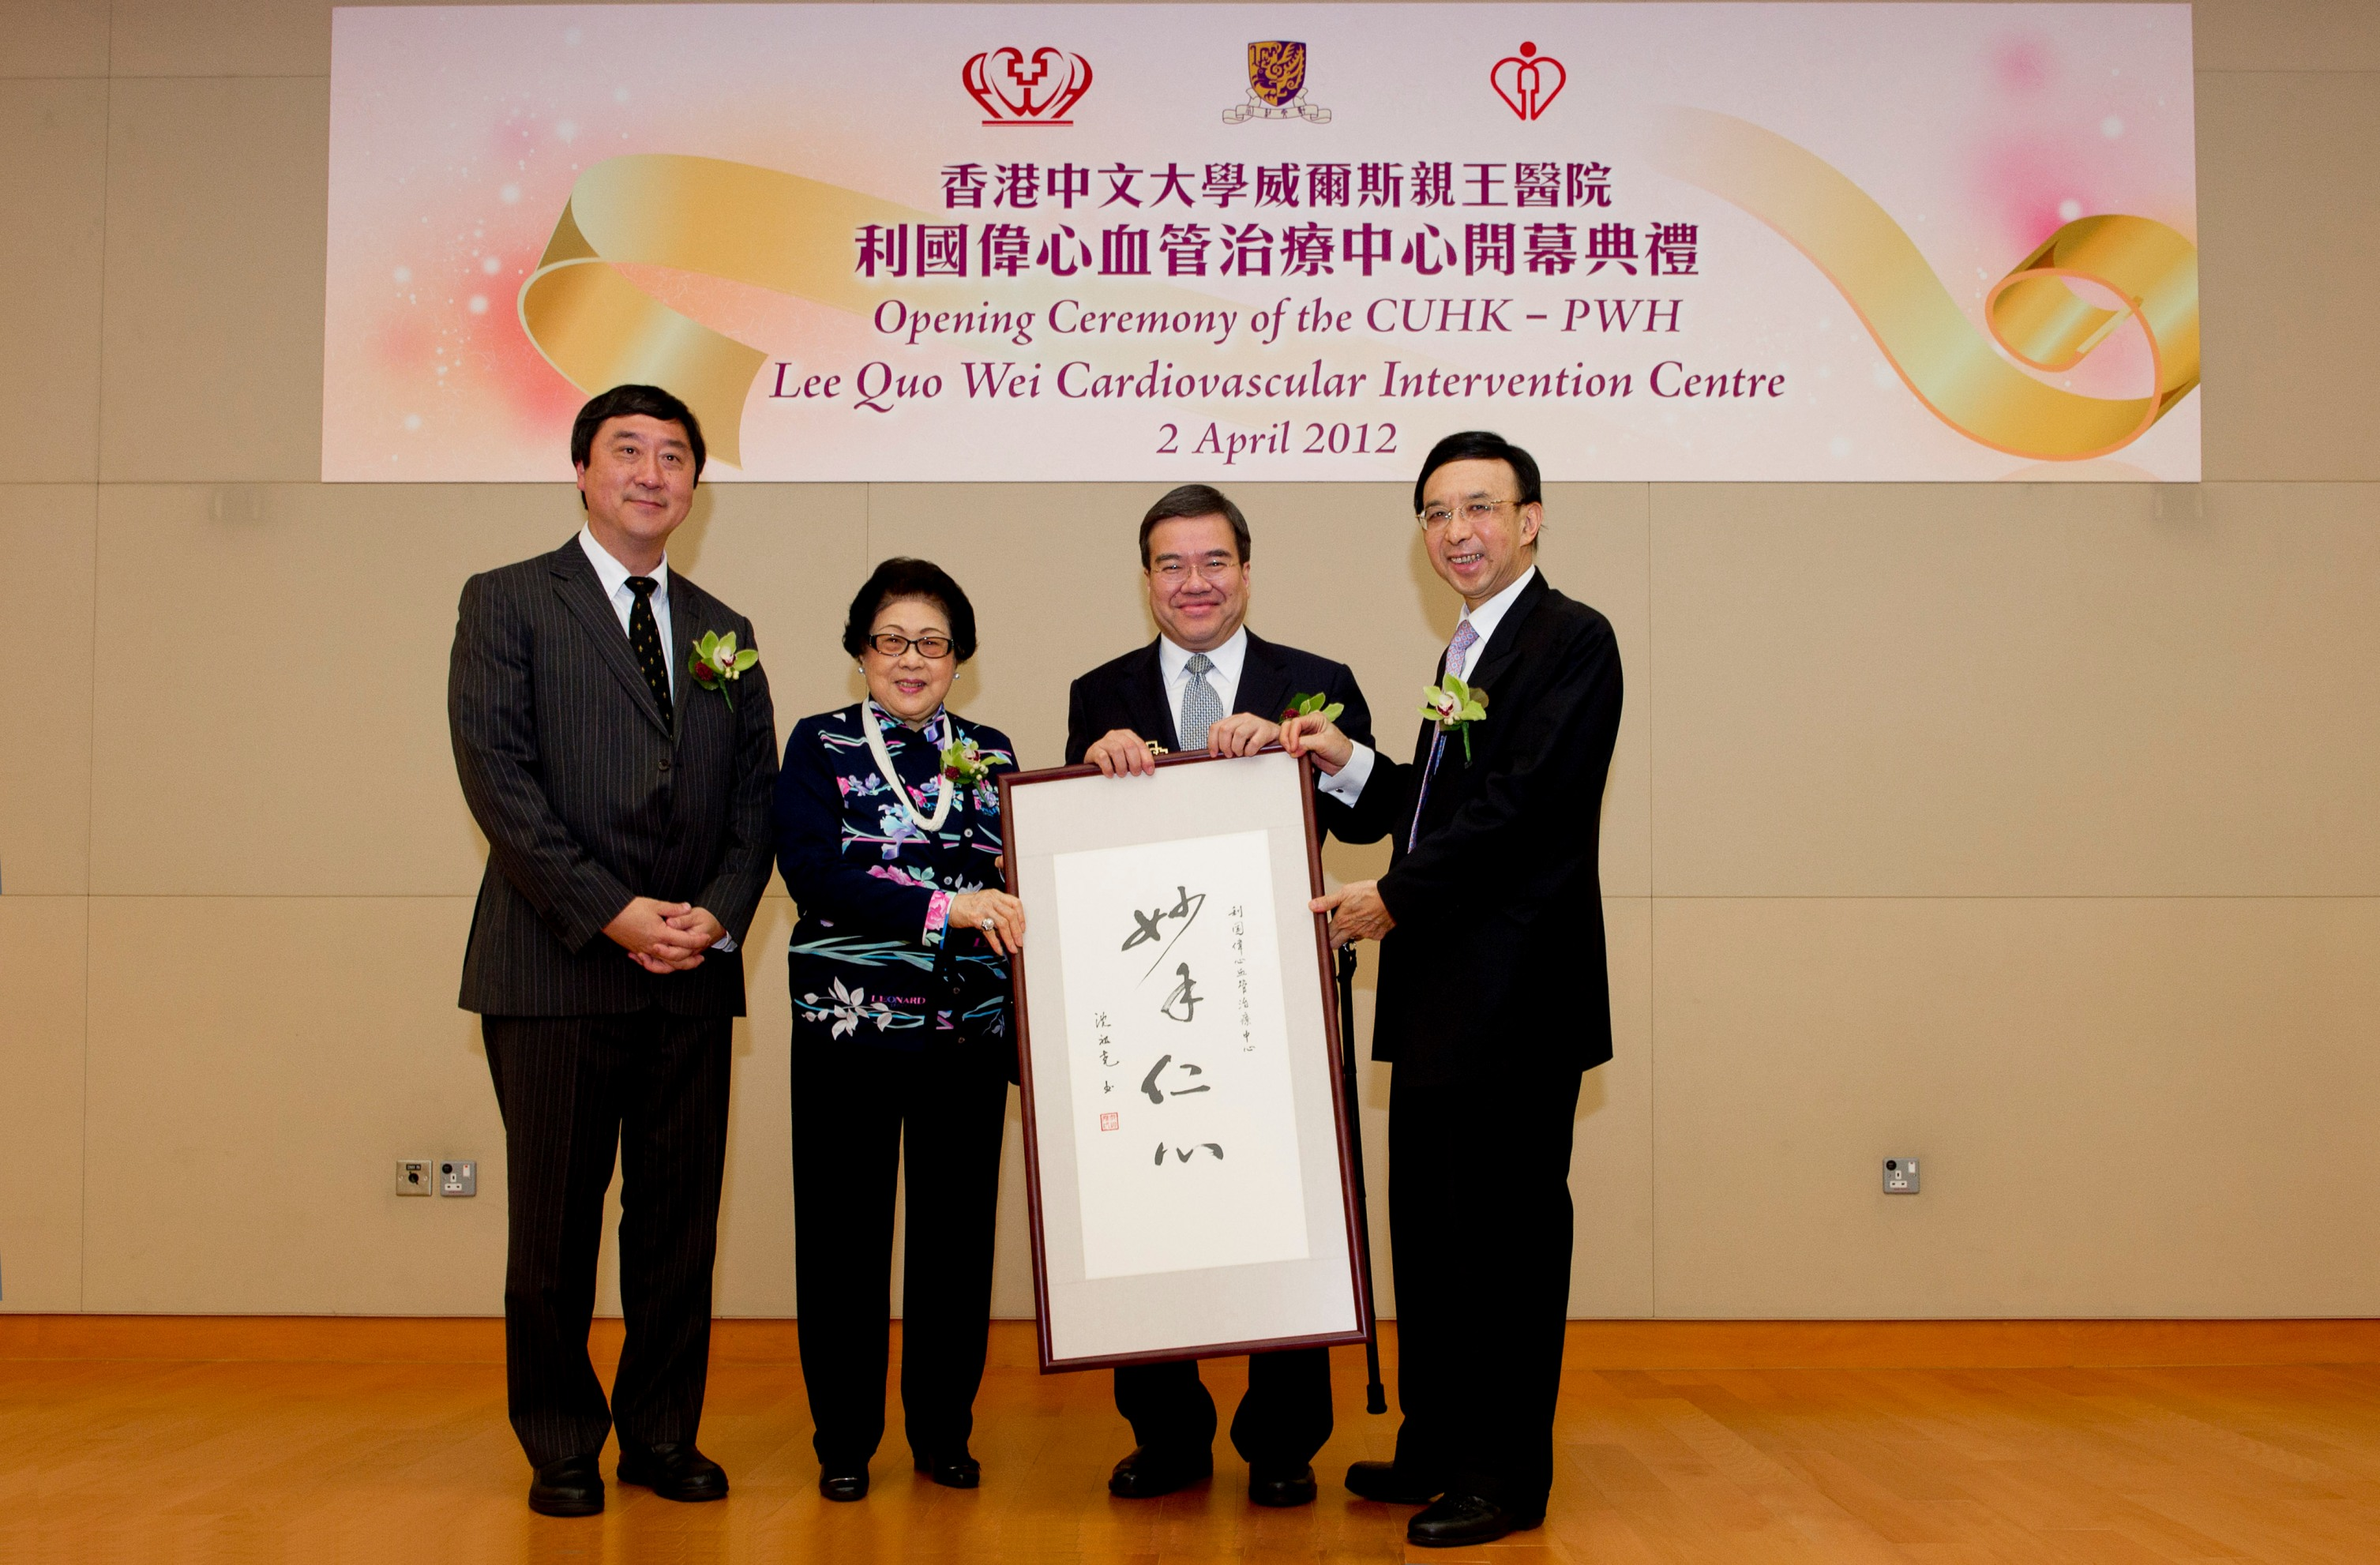 Mr. Anthony Wu, Chairman of the Hospital Authority (2nd right); Dr. Vincent Cheng, Chairman of the Council, CUHK (1st right) and Prof. Joseph Sung, Vice-Chancellor and President, CUHK (1st left) jointly present a calligraphy written by Professor Sung as a souvenir to Mrs. Lee (2nd left)